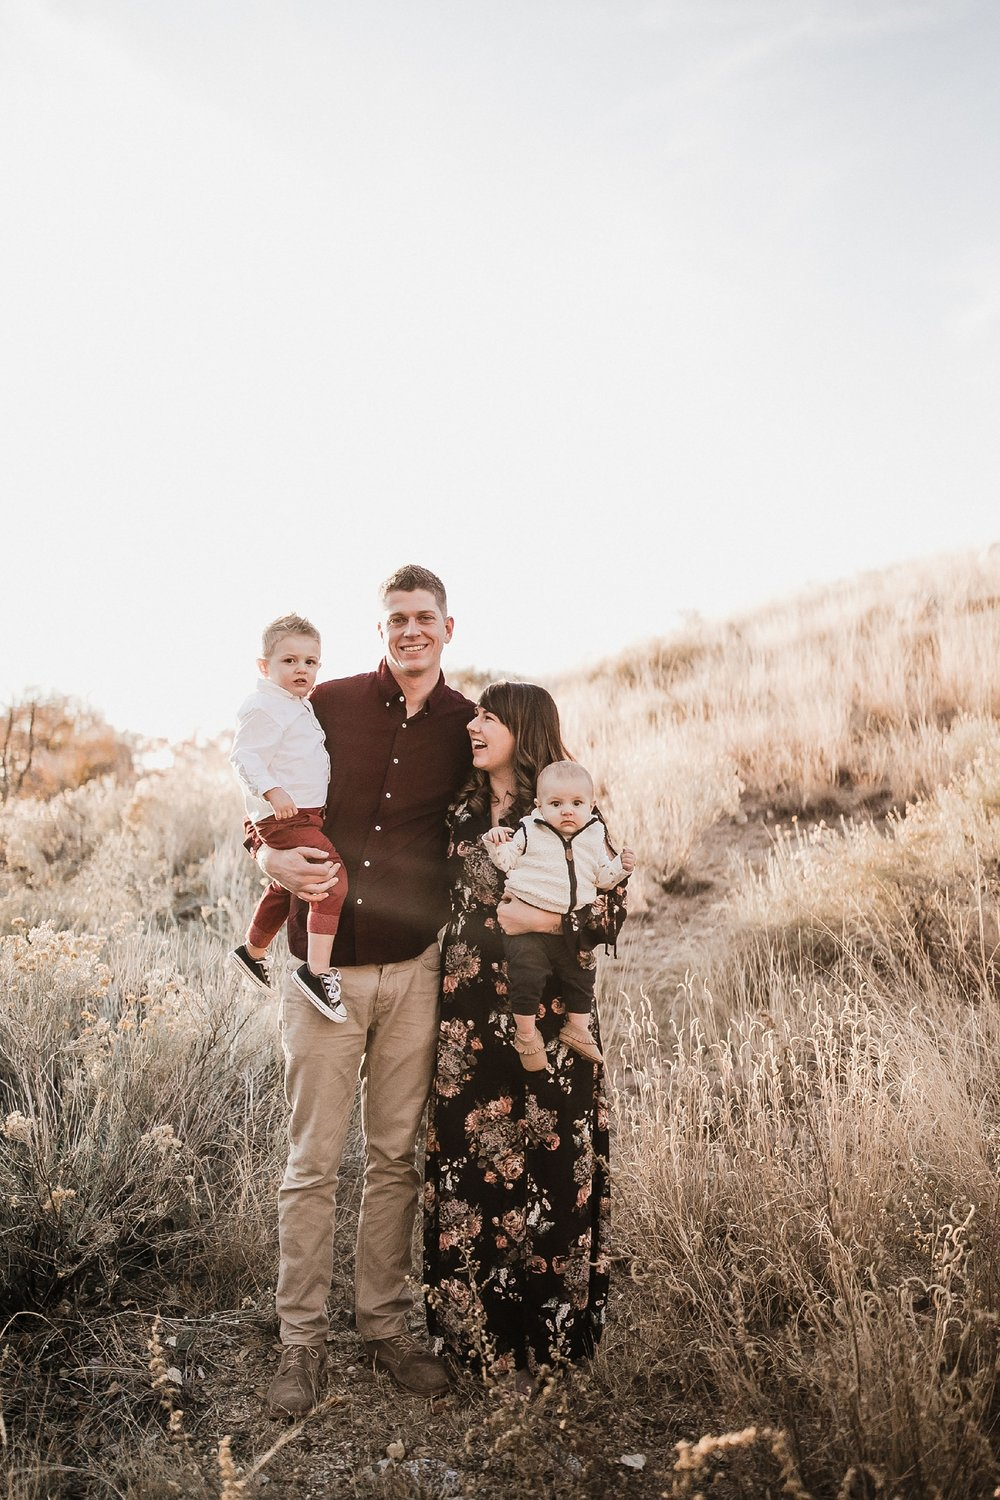 Alicia+lucia+photography+-+albuquerque+wedding+photographer+-+santa+fe+wedding+photography+-+new+mexico+wedding+photographer+-+family+photography+-+family+session+-+southwest+photographer+-+golden+hour+session_0004.jpg